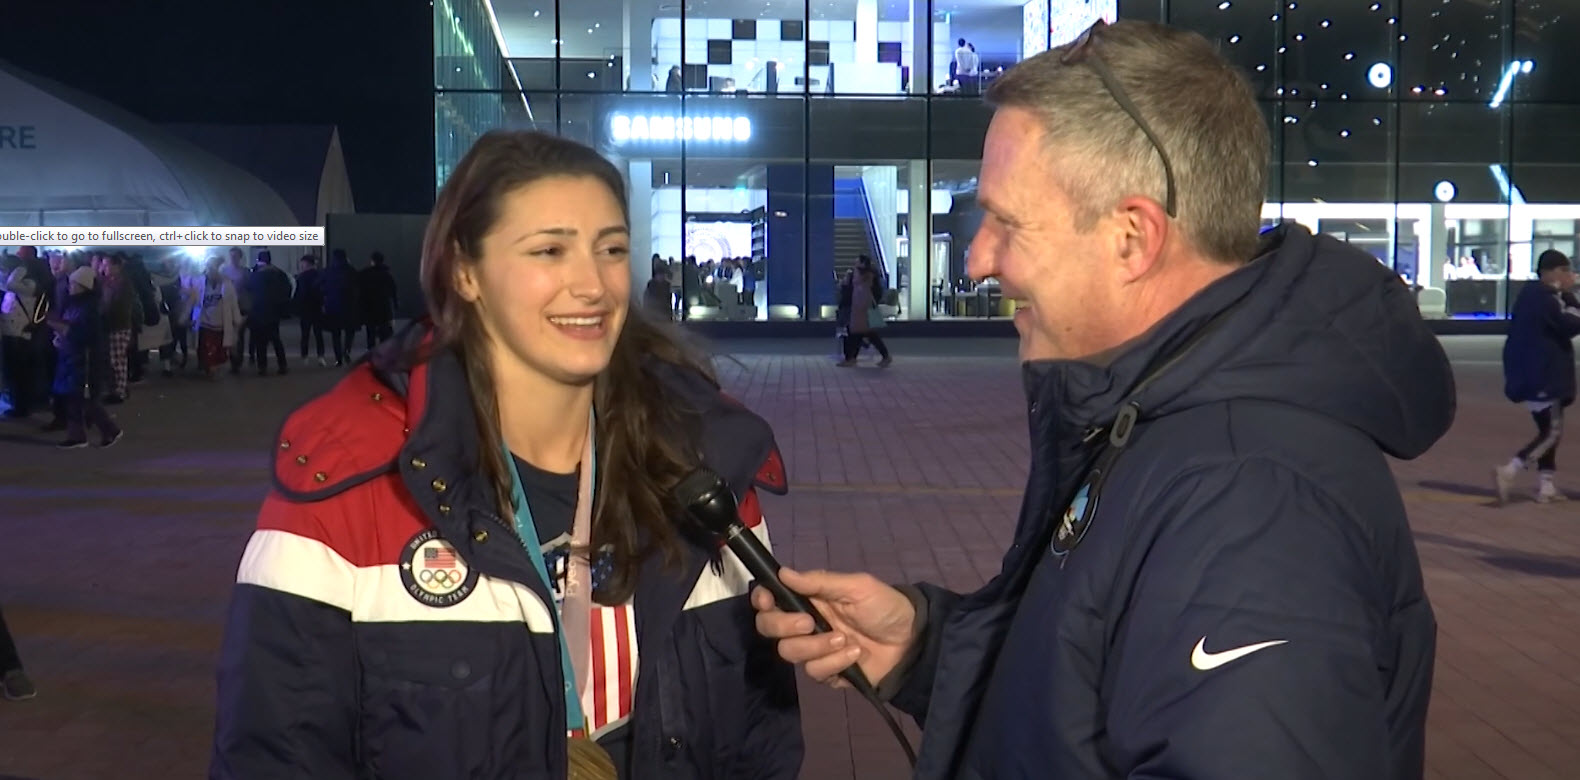 Jack talks with Olympic gold medalist Megan Heller of Team USA Hockey_1519345658576.jpg-54729046.jpg